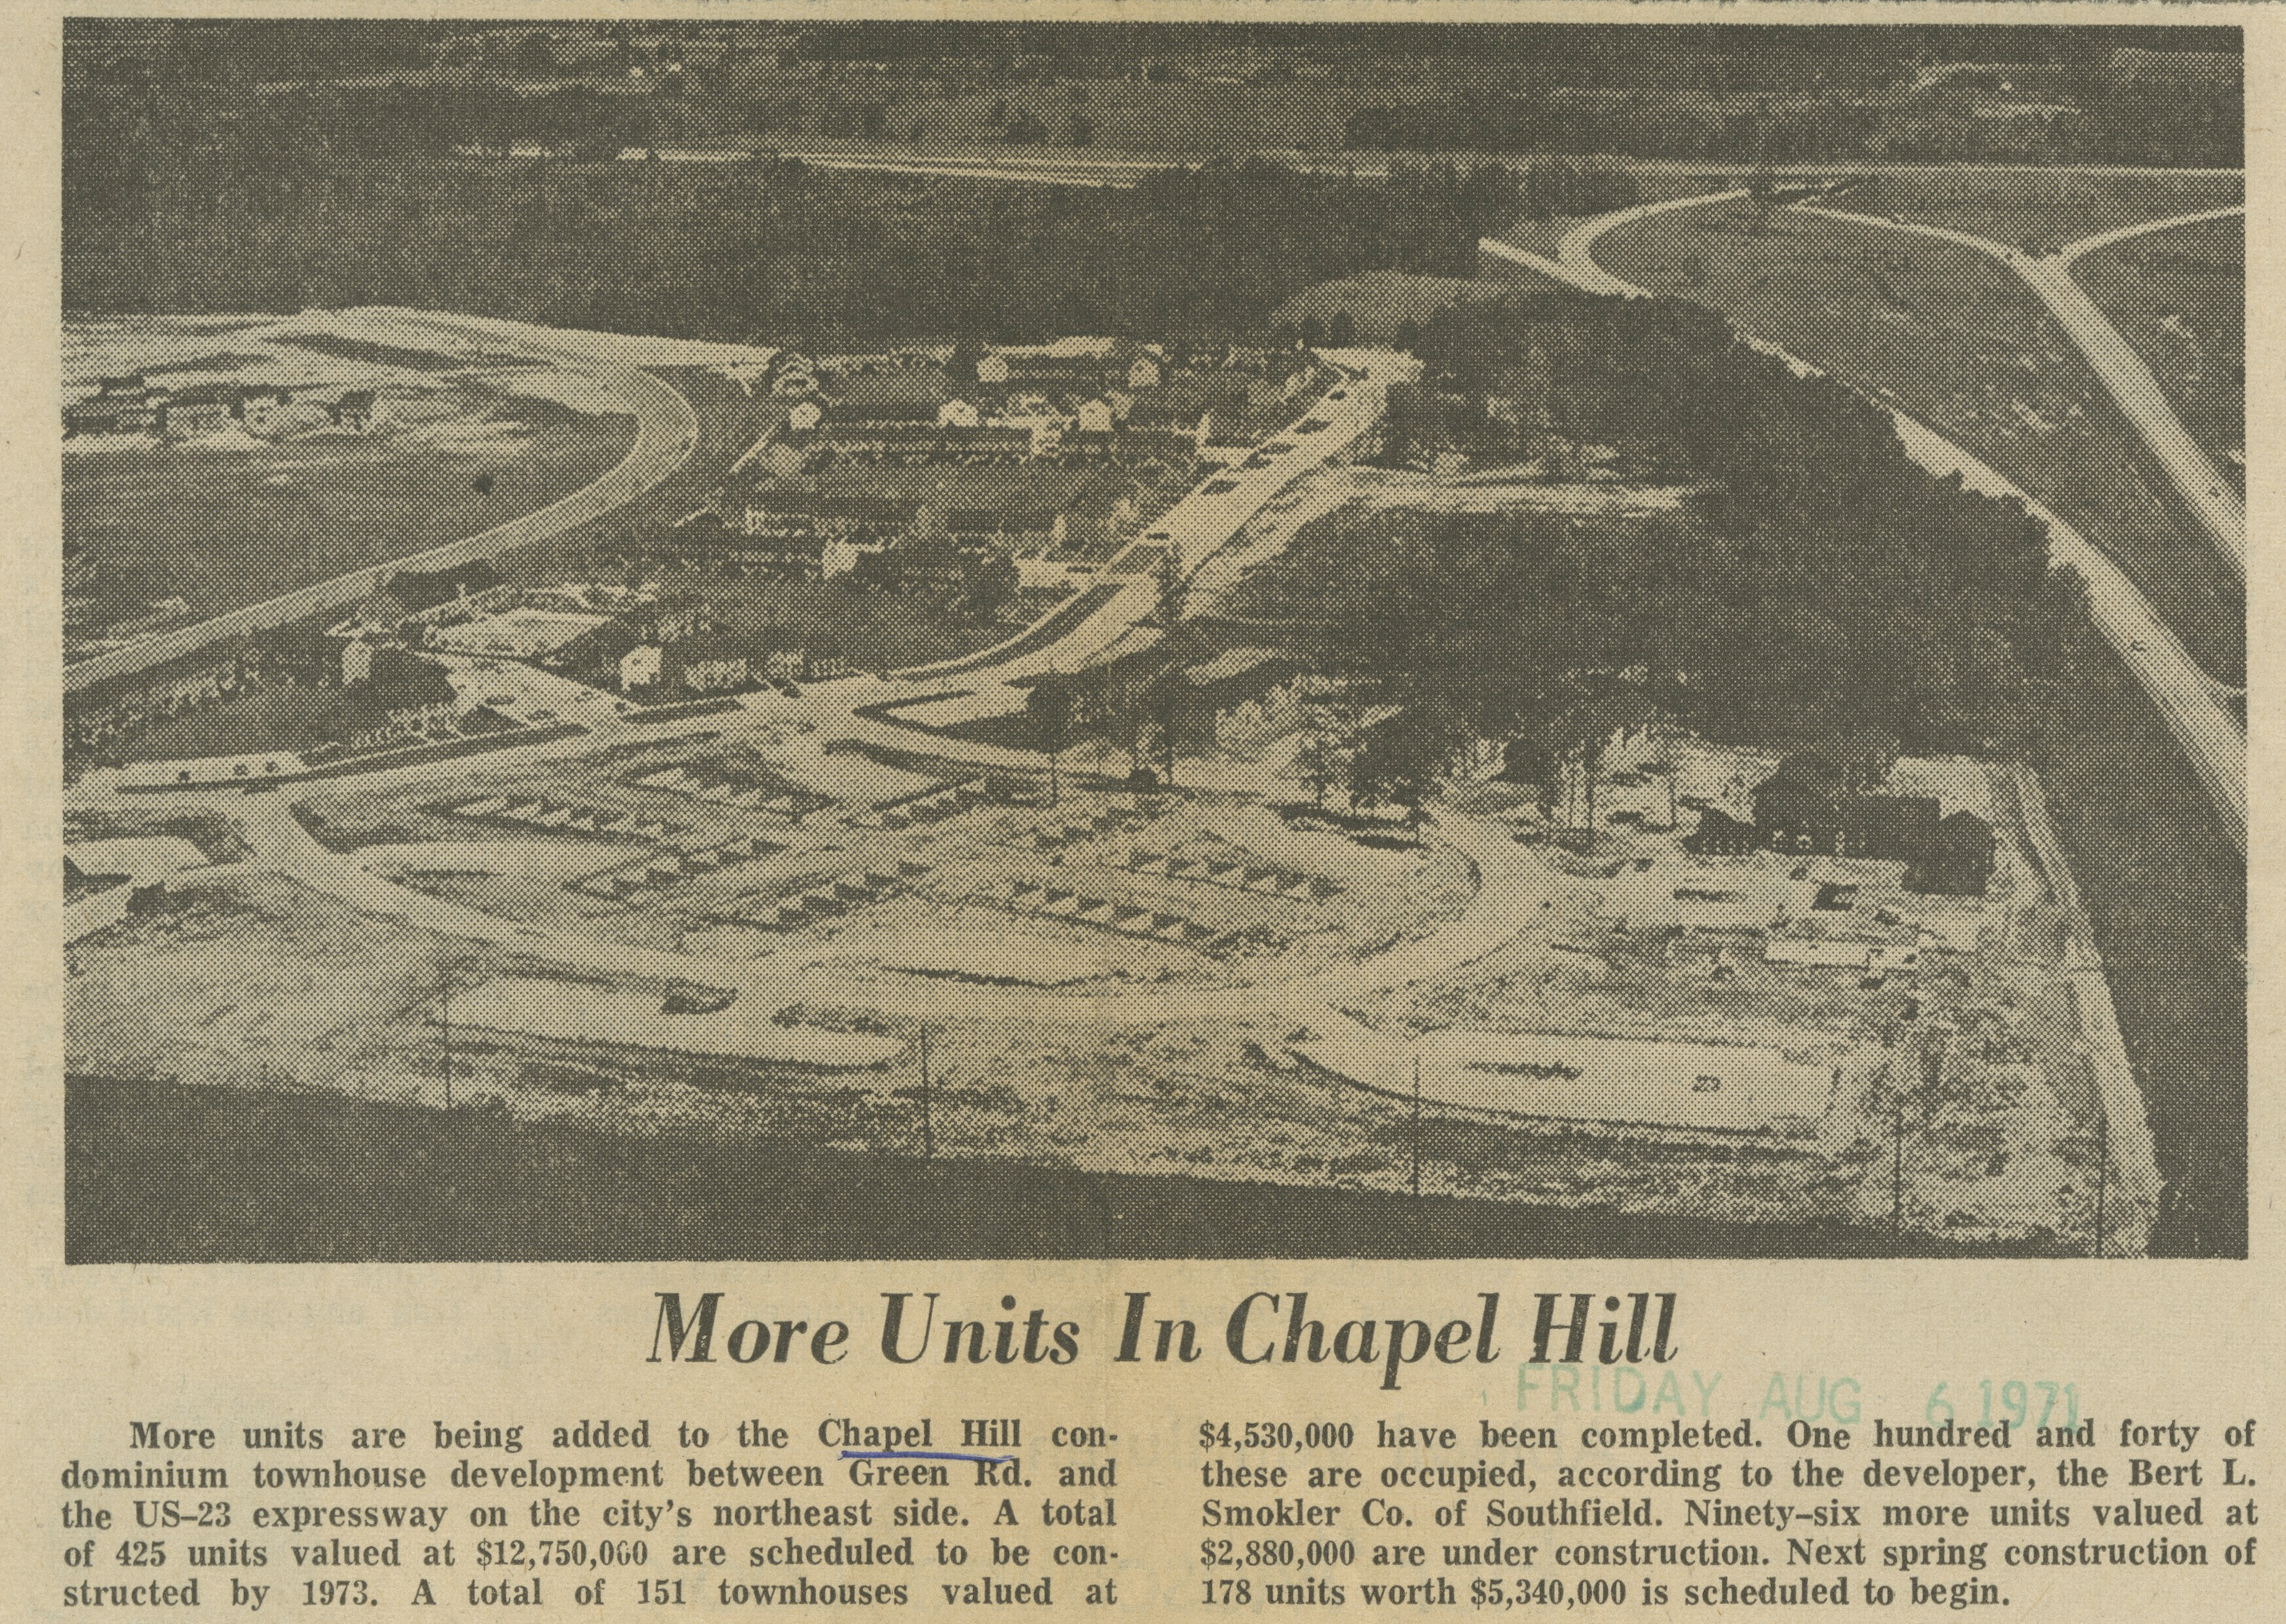 More Units In Chapel Hill image